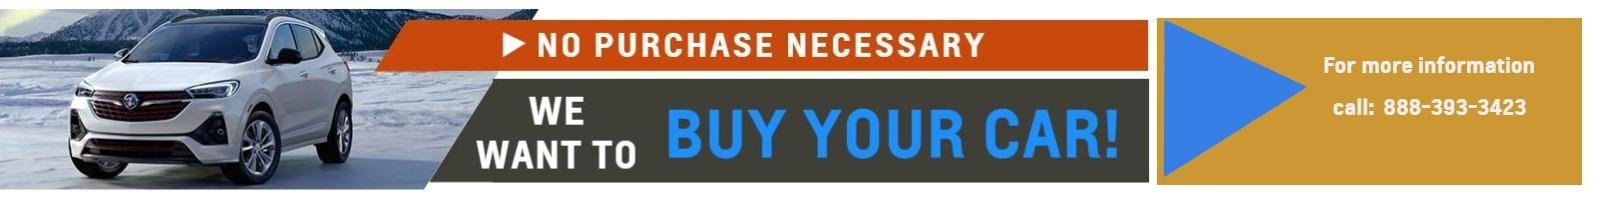 We want to buy your car -  NO PURCHASE NECESSARY - for more information call 888-393-4523